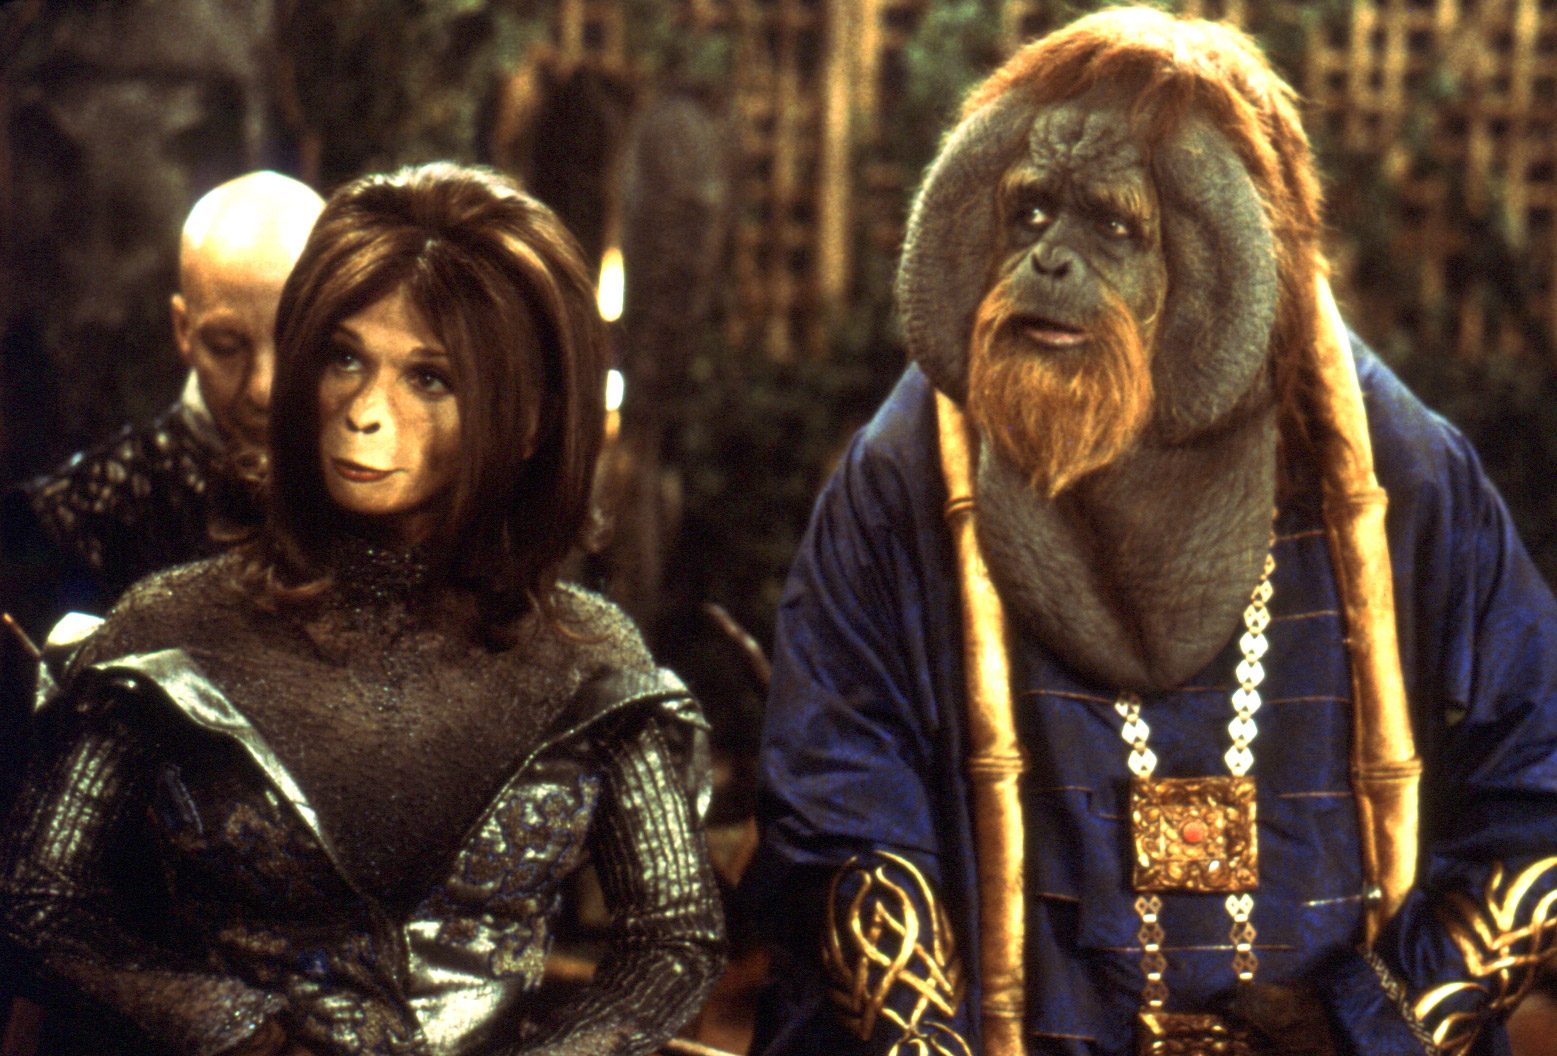 Ari (Helena Bonham Carter) and Senator Nado (Glenn Shadix) in Planet of the Apes (2001)